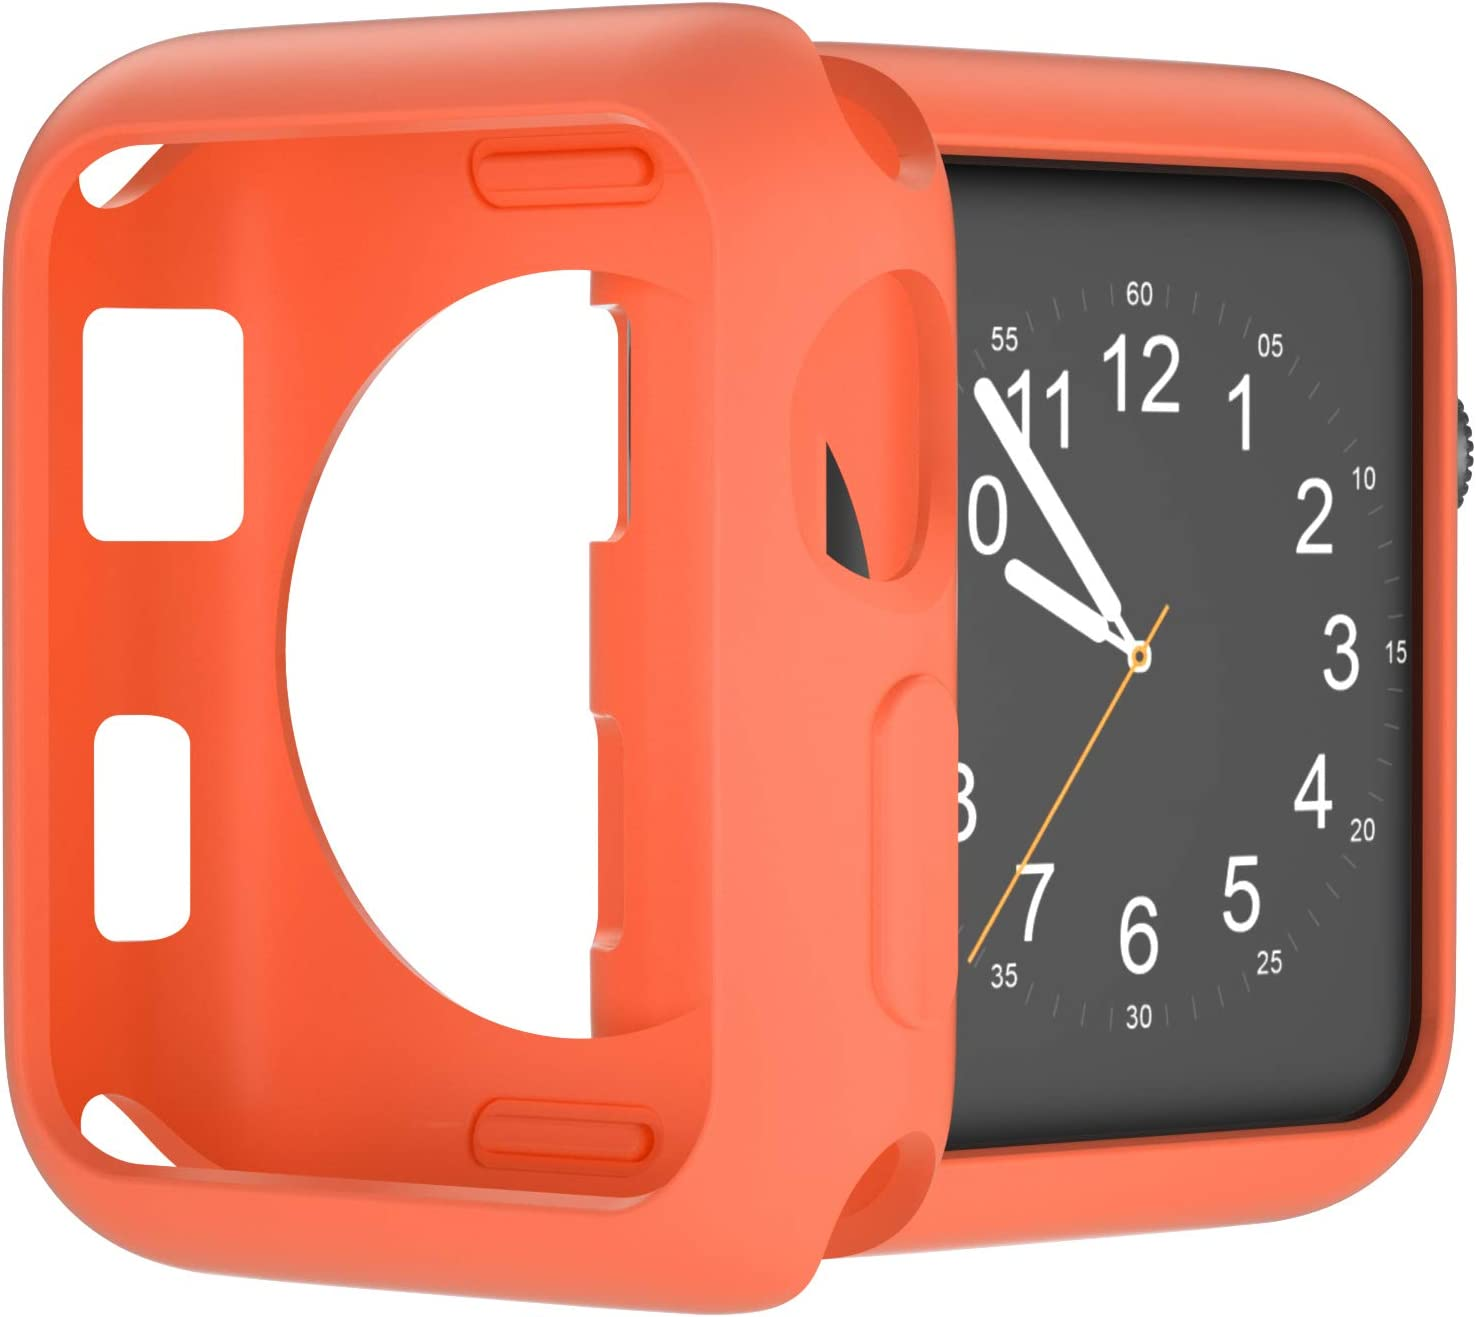 U191U Compatible with Apple Watch Case 38mm 42mm 40mm 44mm, Soft TPU Shockproof and Shatter-Resistant Protective Bumper Cover iwatch Series 5 4 3 2 Case (Orange, 38mm Series 2/3)